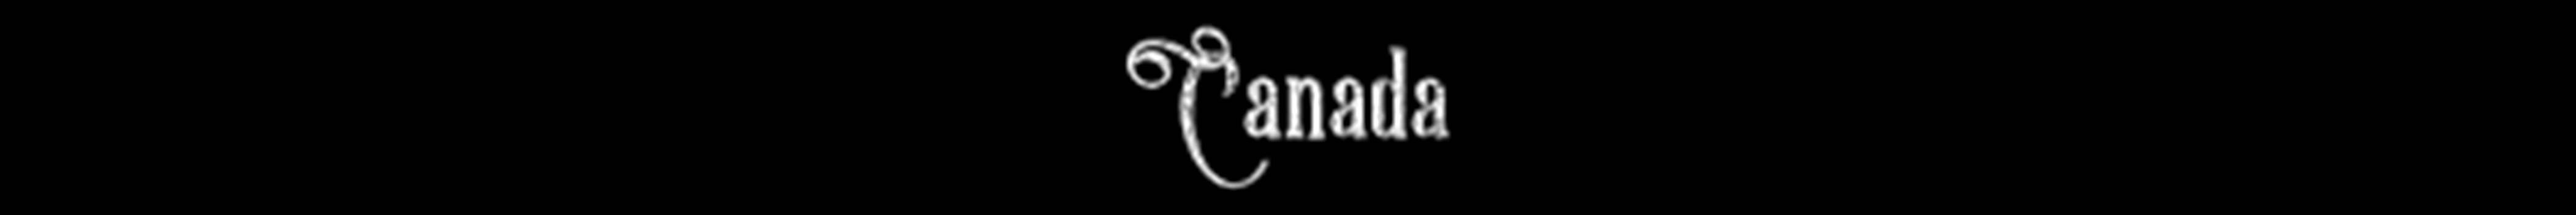 Canada.png by CraftyQueen